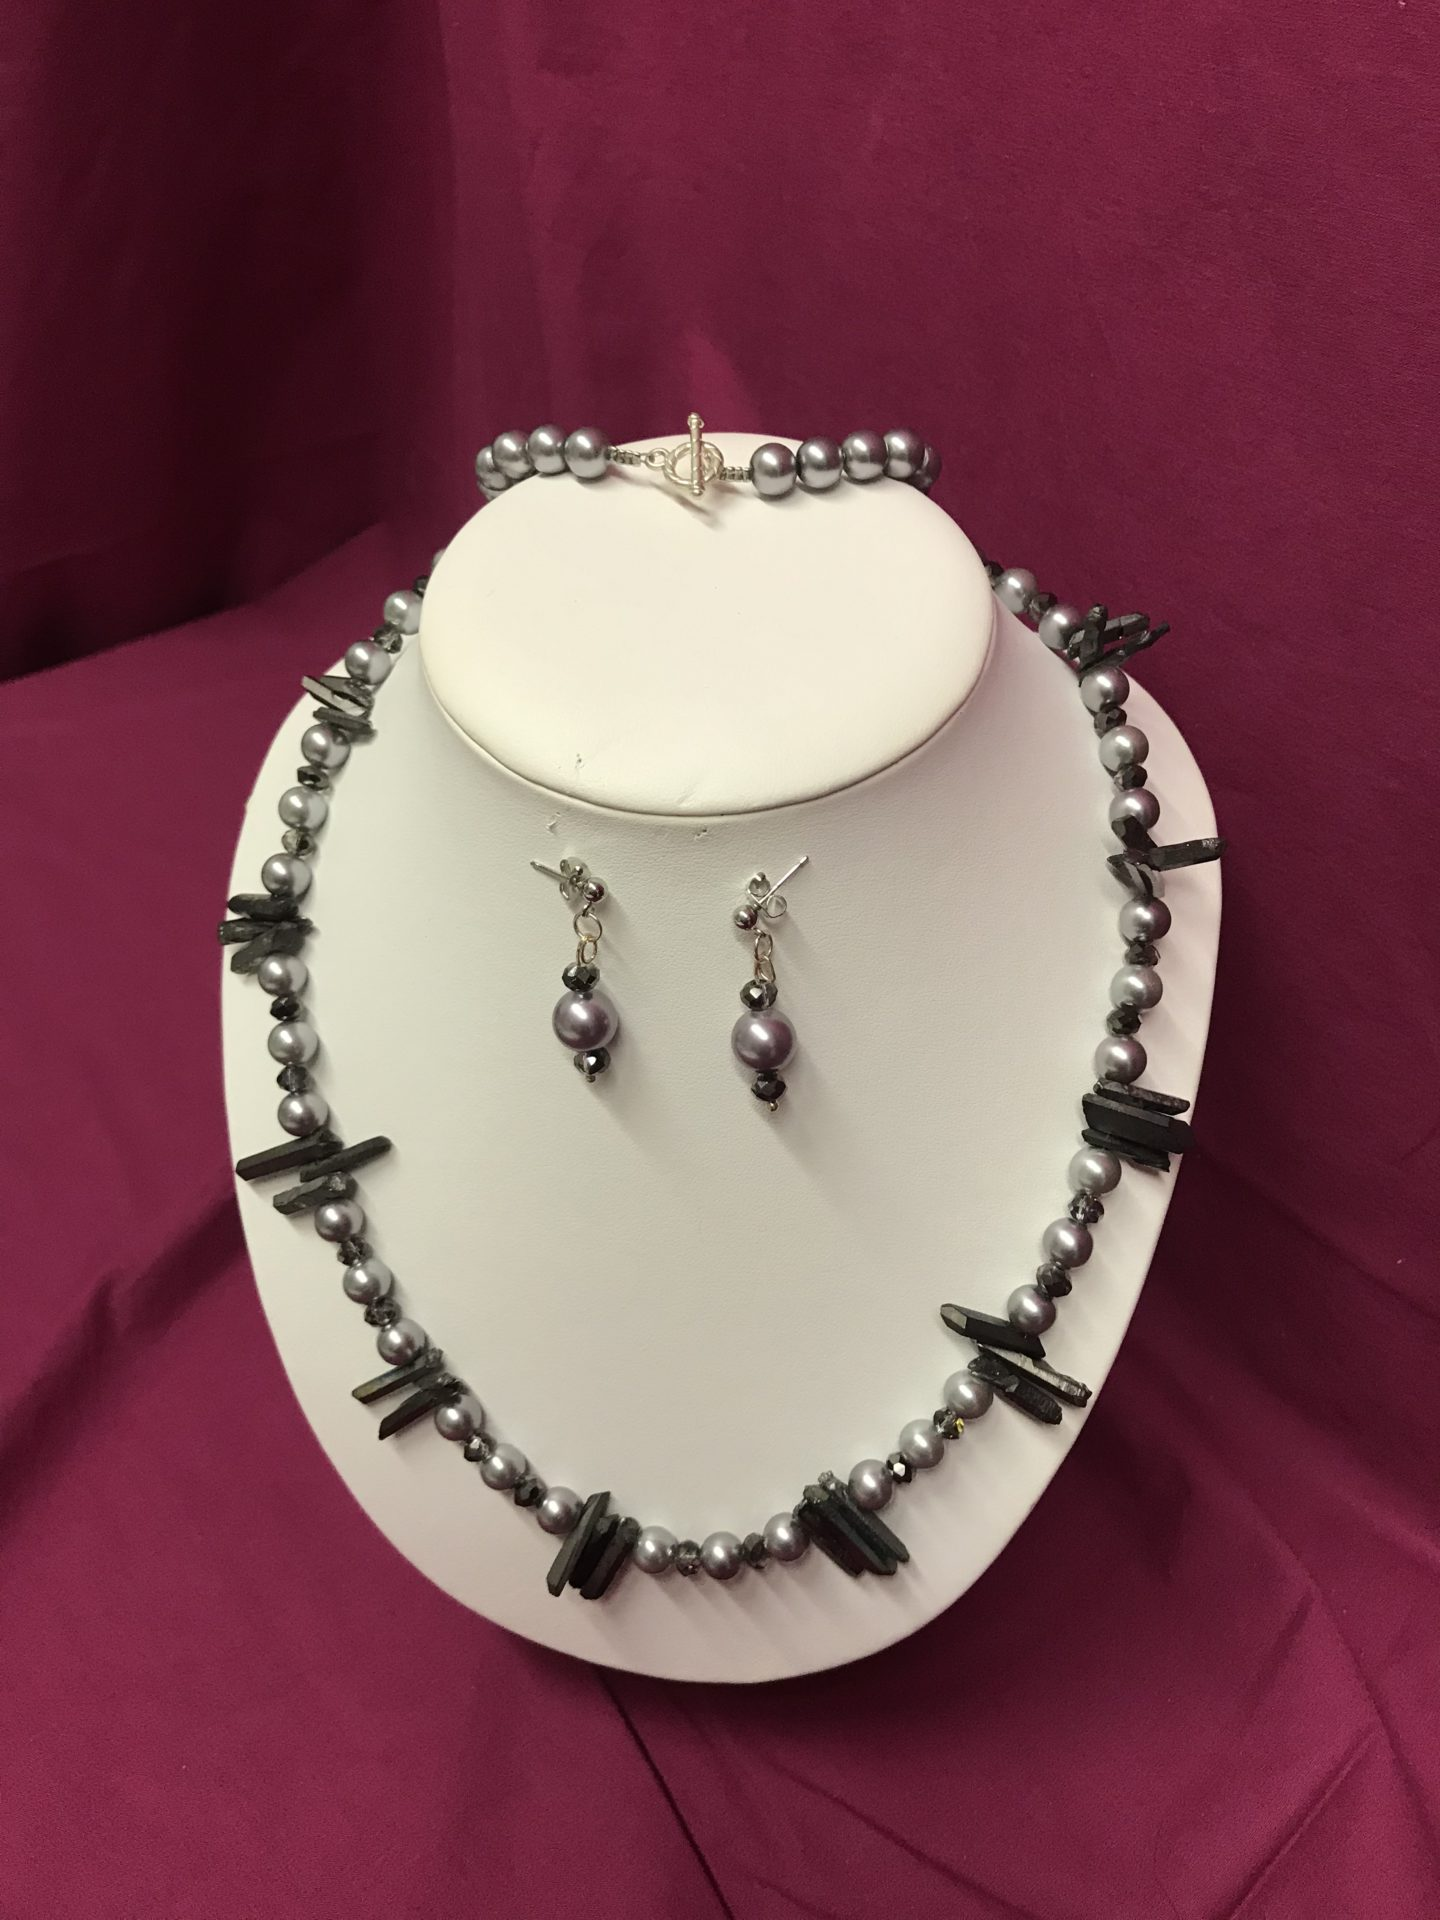 337 Pewter Pearl Necklace & Earrings